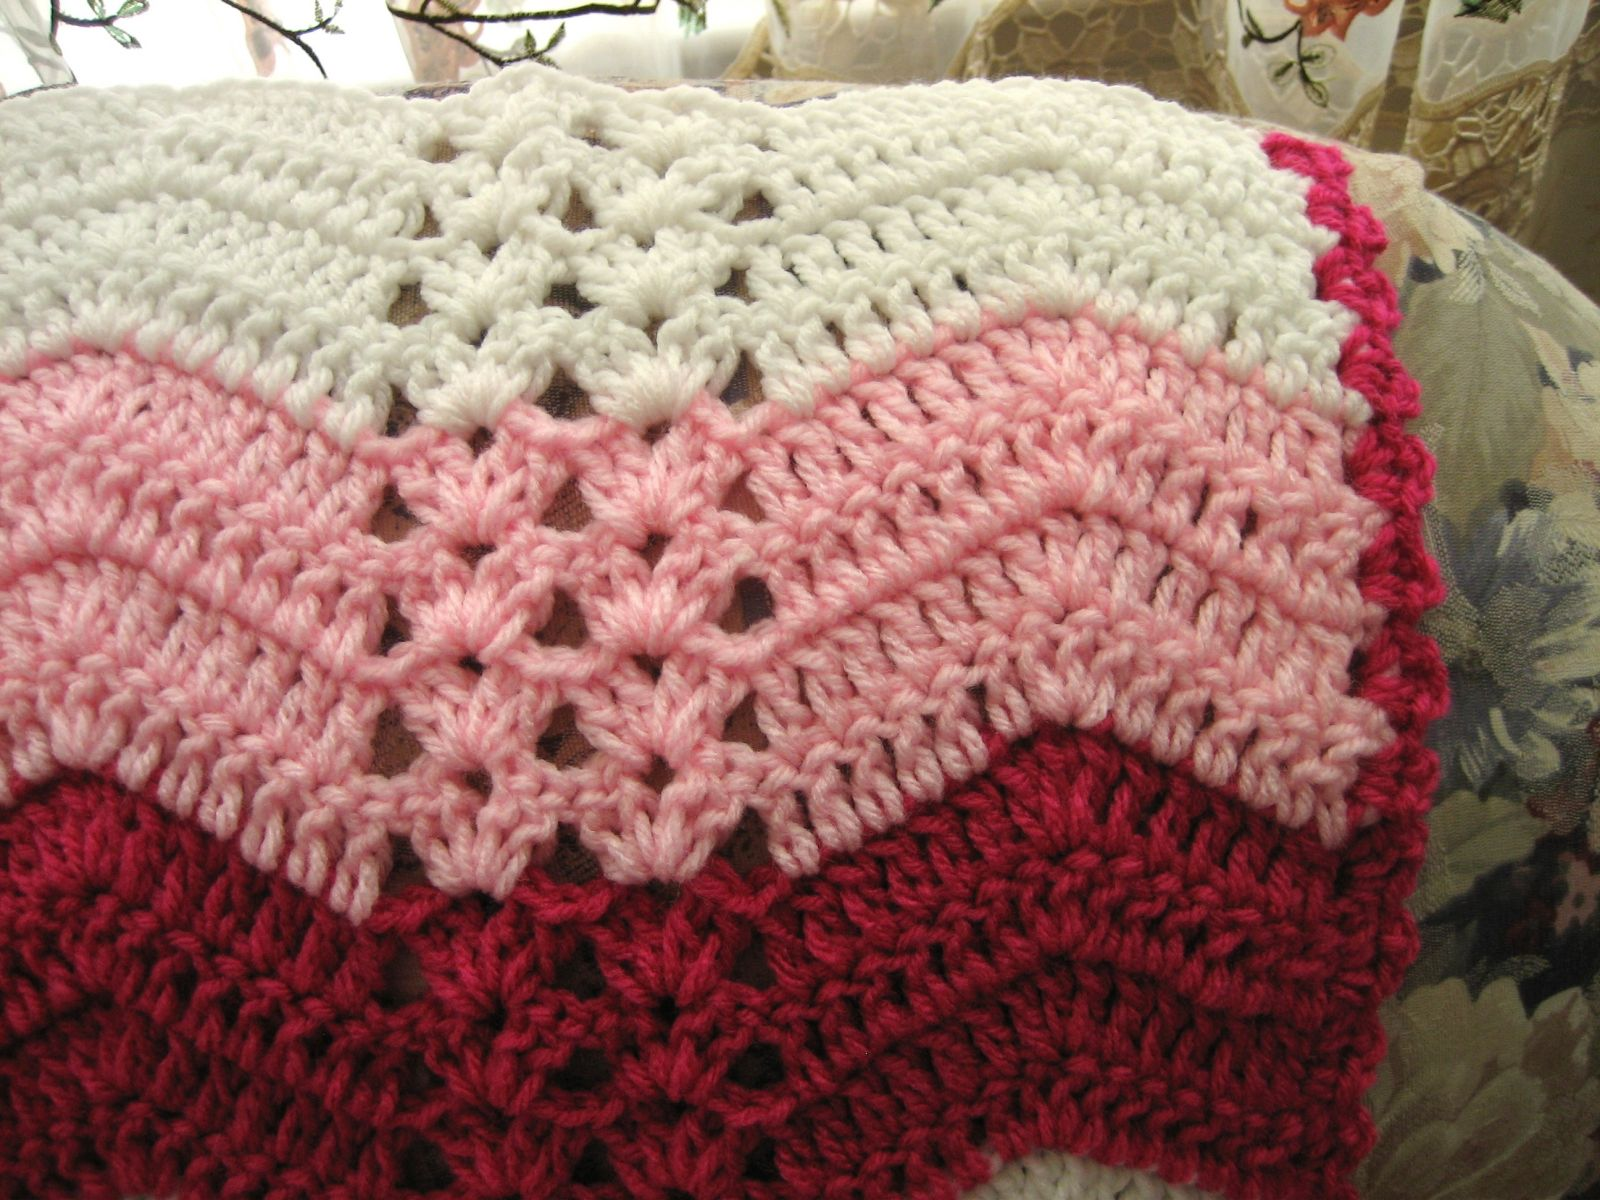 Free Afghan Crochet Patterns : Pics Photos - Ripple Afghans Free Crochet Patterns And Design ...